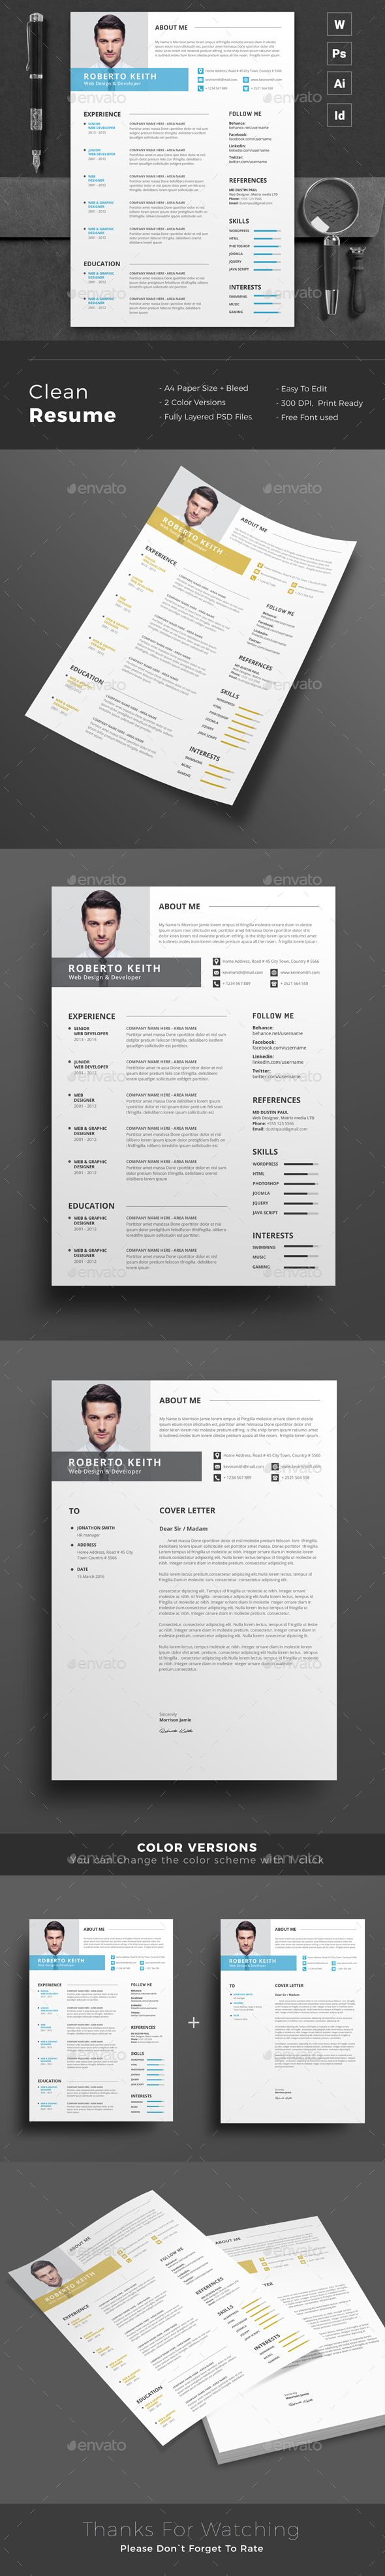 Ui Developer Resume Excel Resume  Cv Template Resume Cv And Cv Resume Template New Grad Rn Resume Sample with Resume Reference Page Example Creative Cv Paralegal Resume Sample Excel